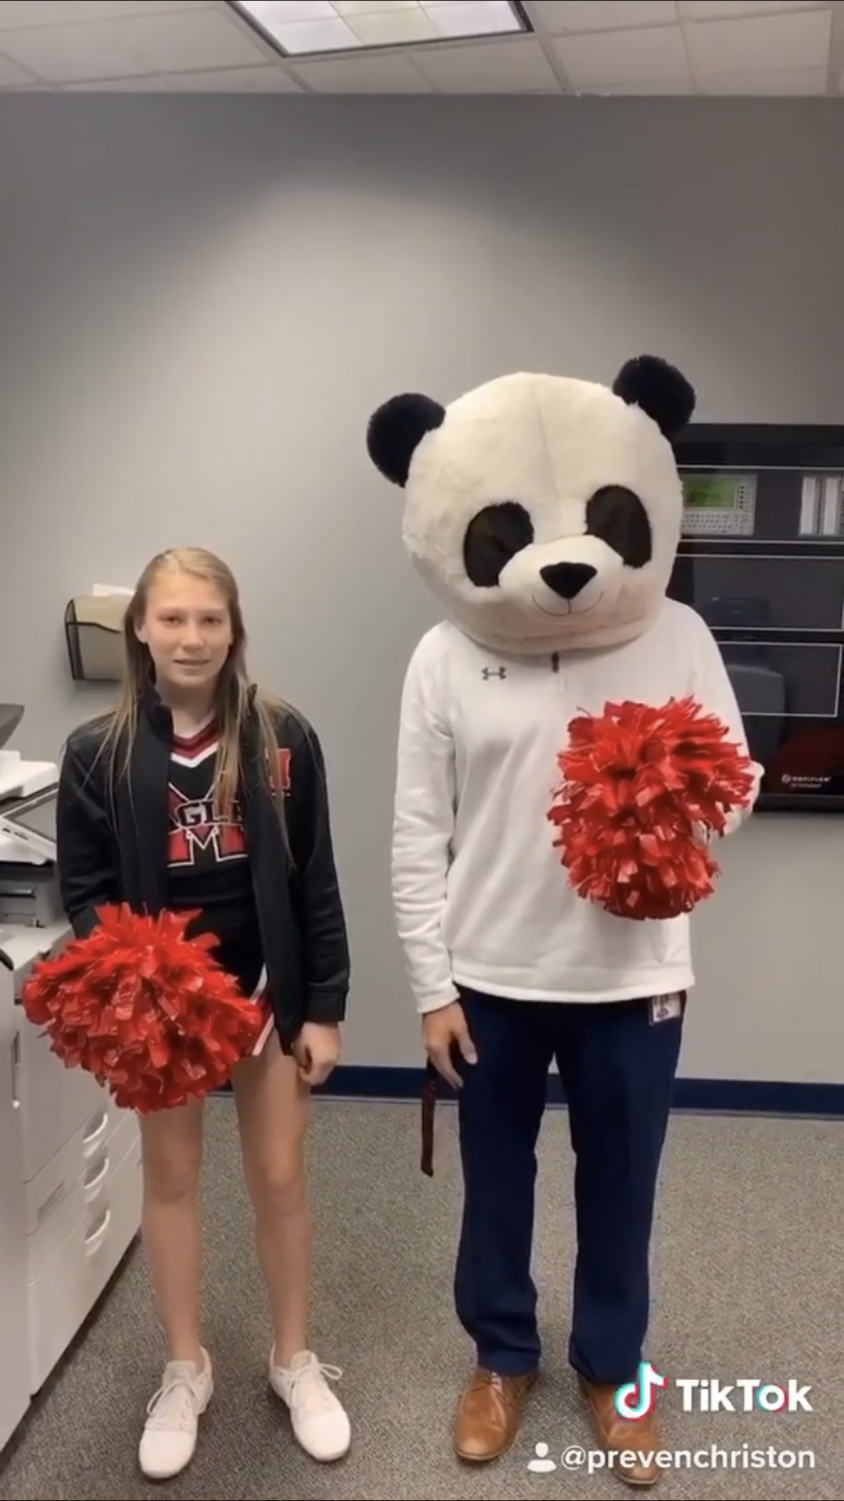 Maize high principal participates in making a Tik Tok to engage with students.